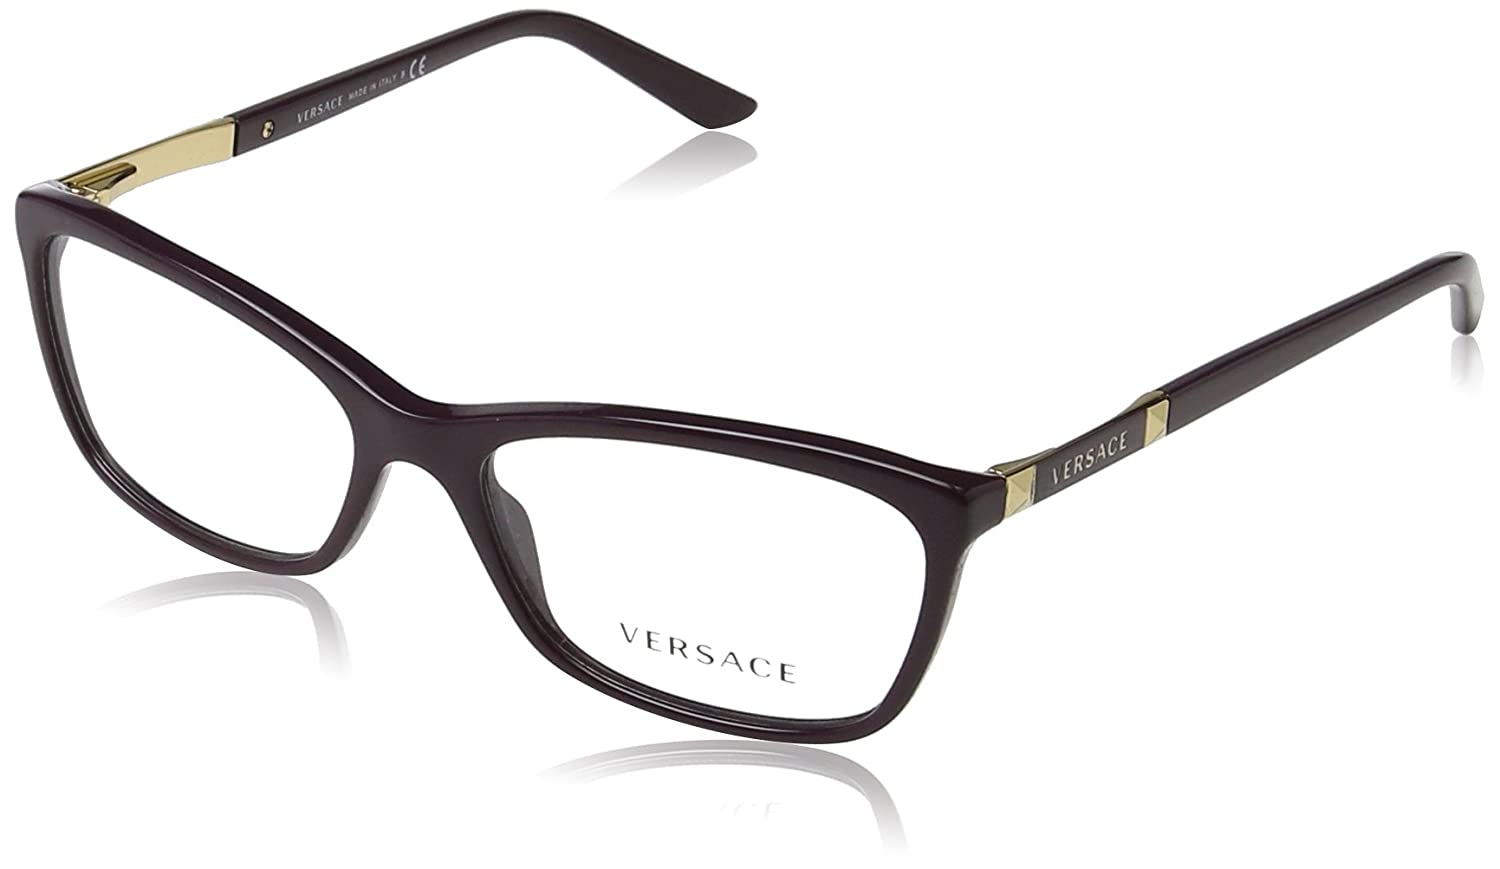 760102c7d43 Amazon.com  Versace Women s VE3186 Eyeglasses 52mm  Shoes